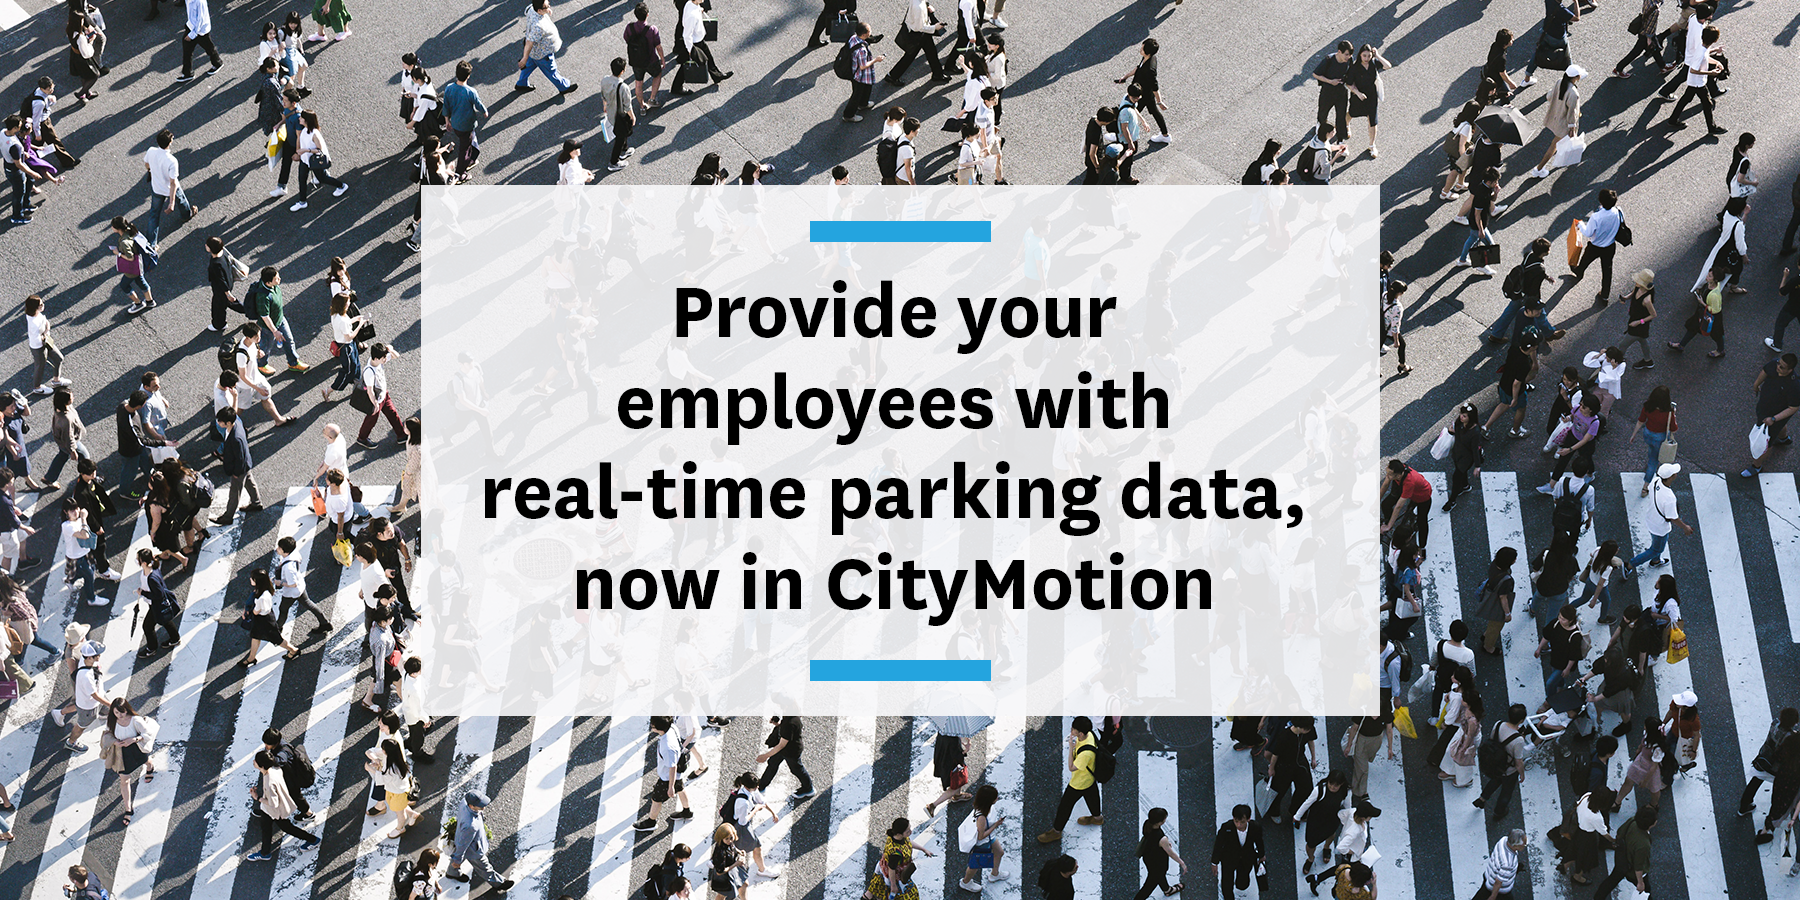 Real-time parking information in CityMotion